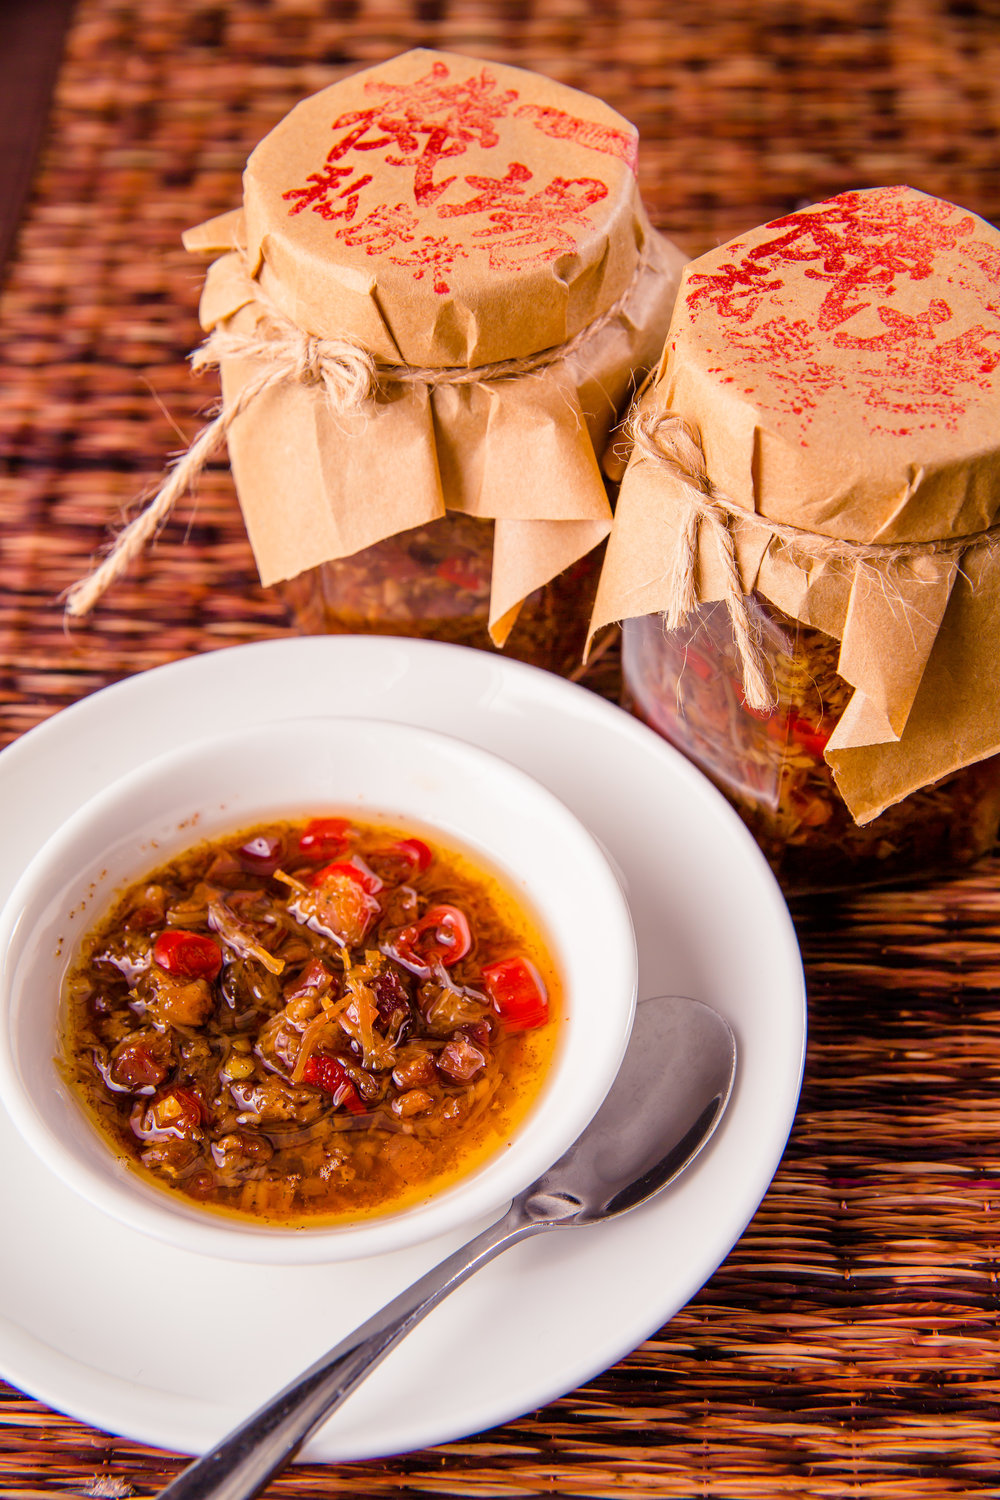 How To Video: Chef Sum Shares A Step-by-Step Guide on How to Make His Signature XO Sauce